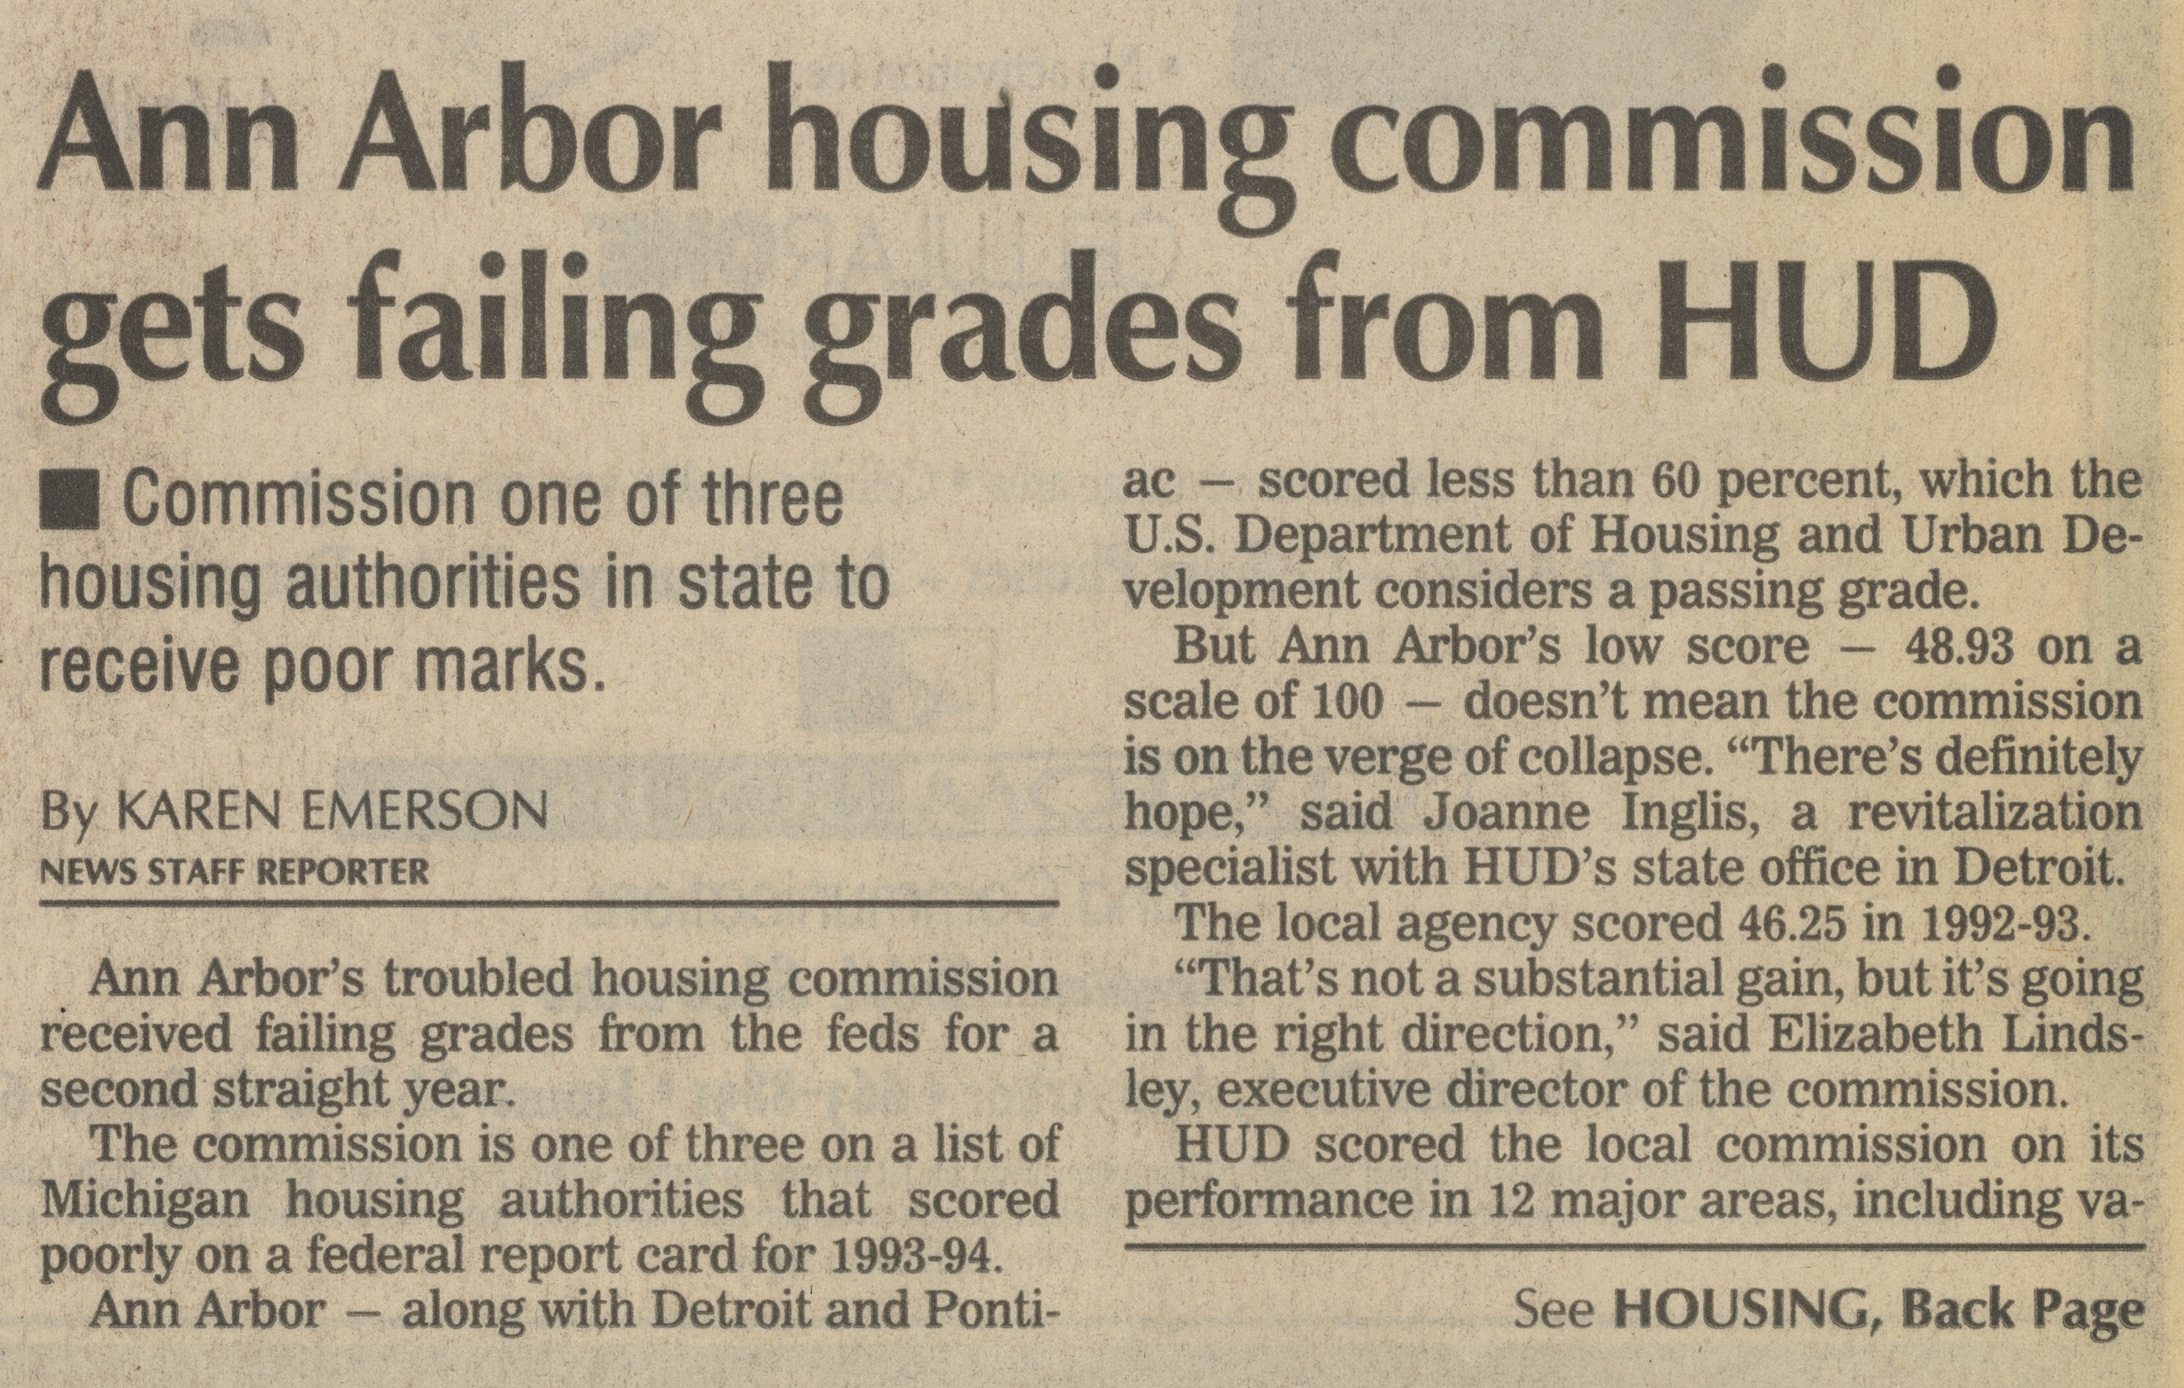 Ann Arbor Housing Commission Gets Failing Grades From HUD